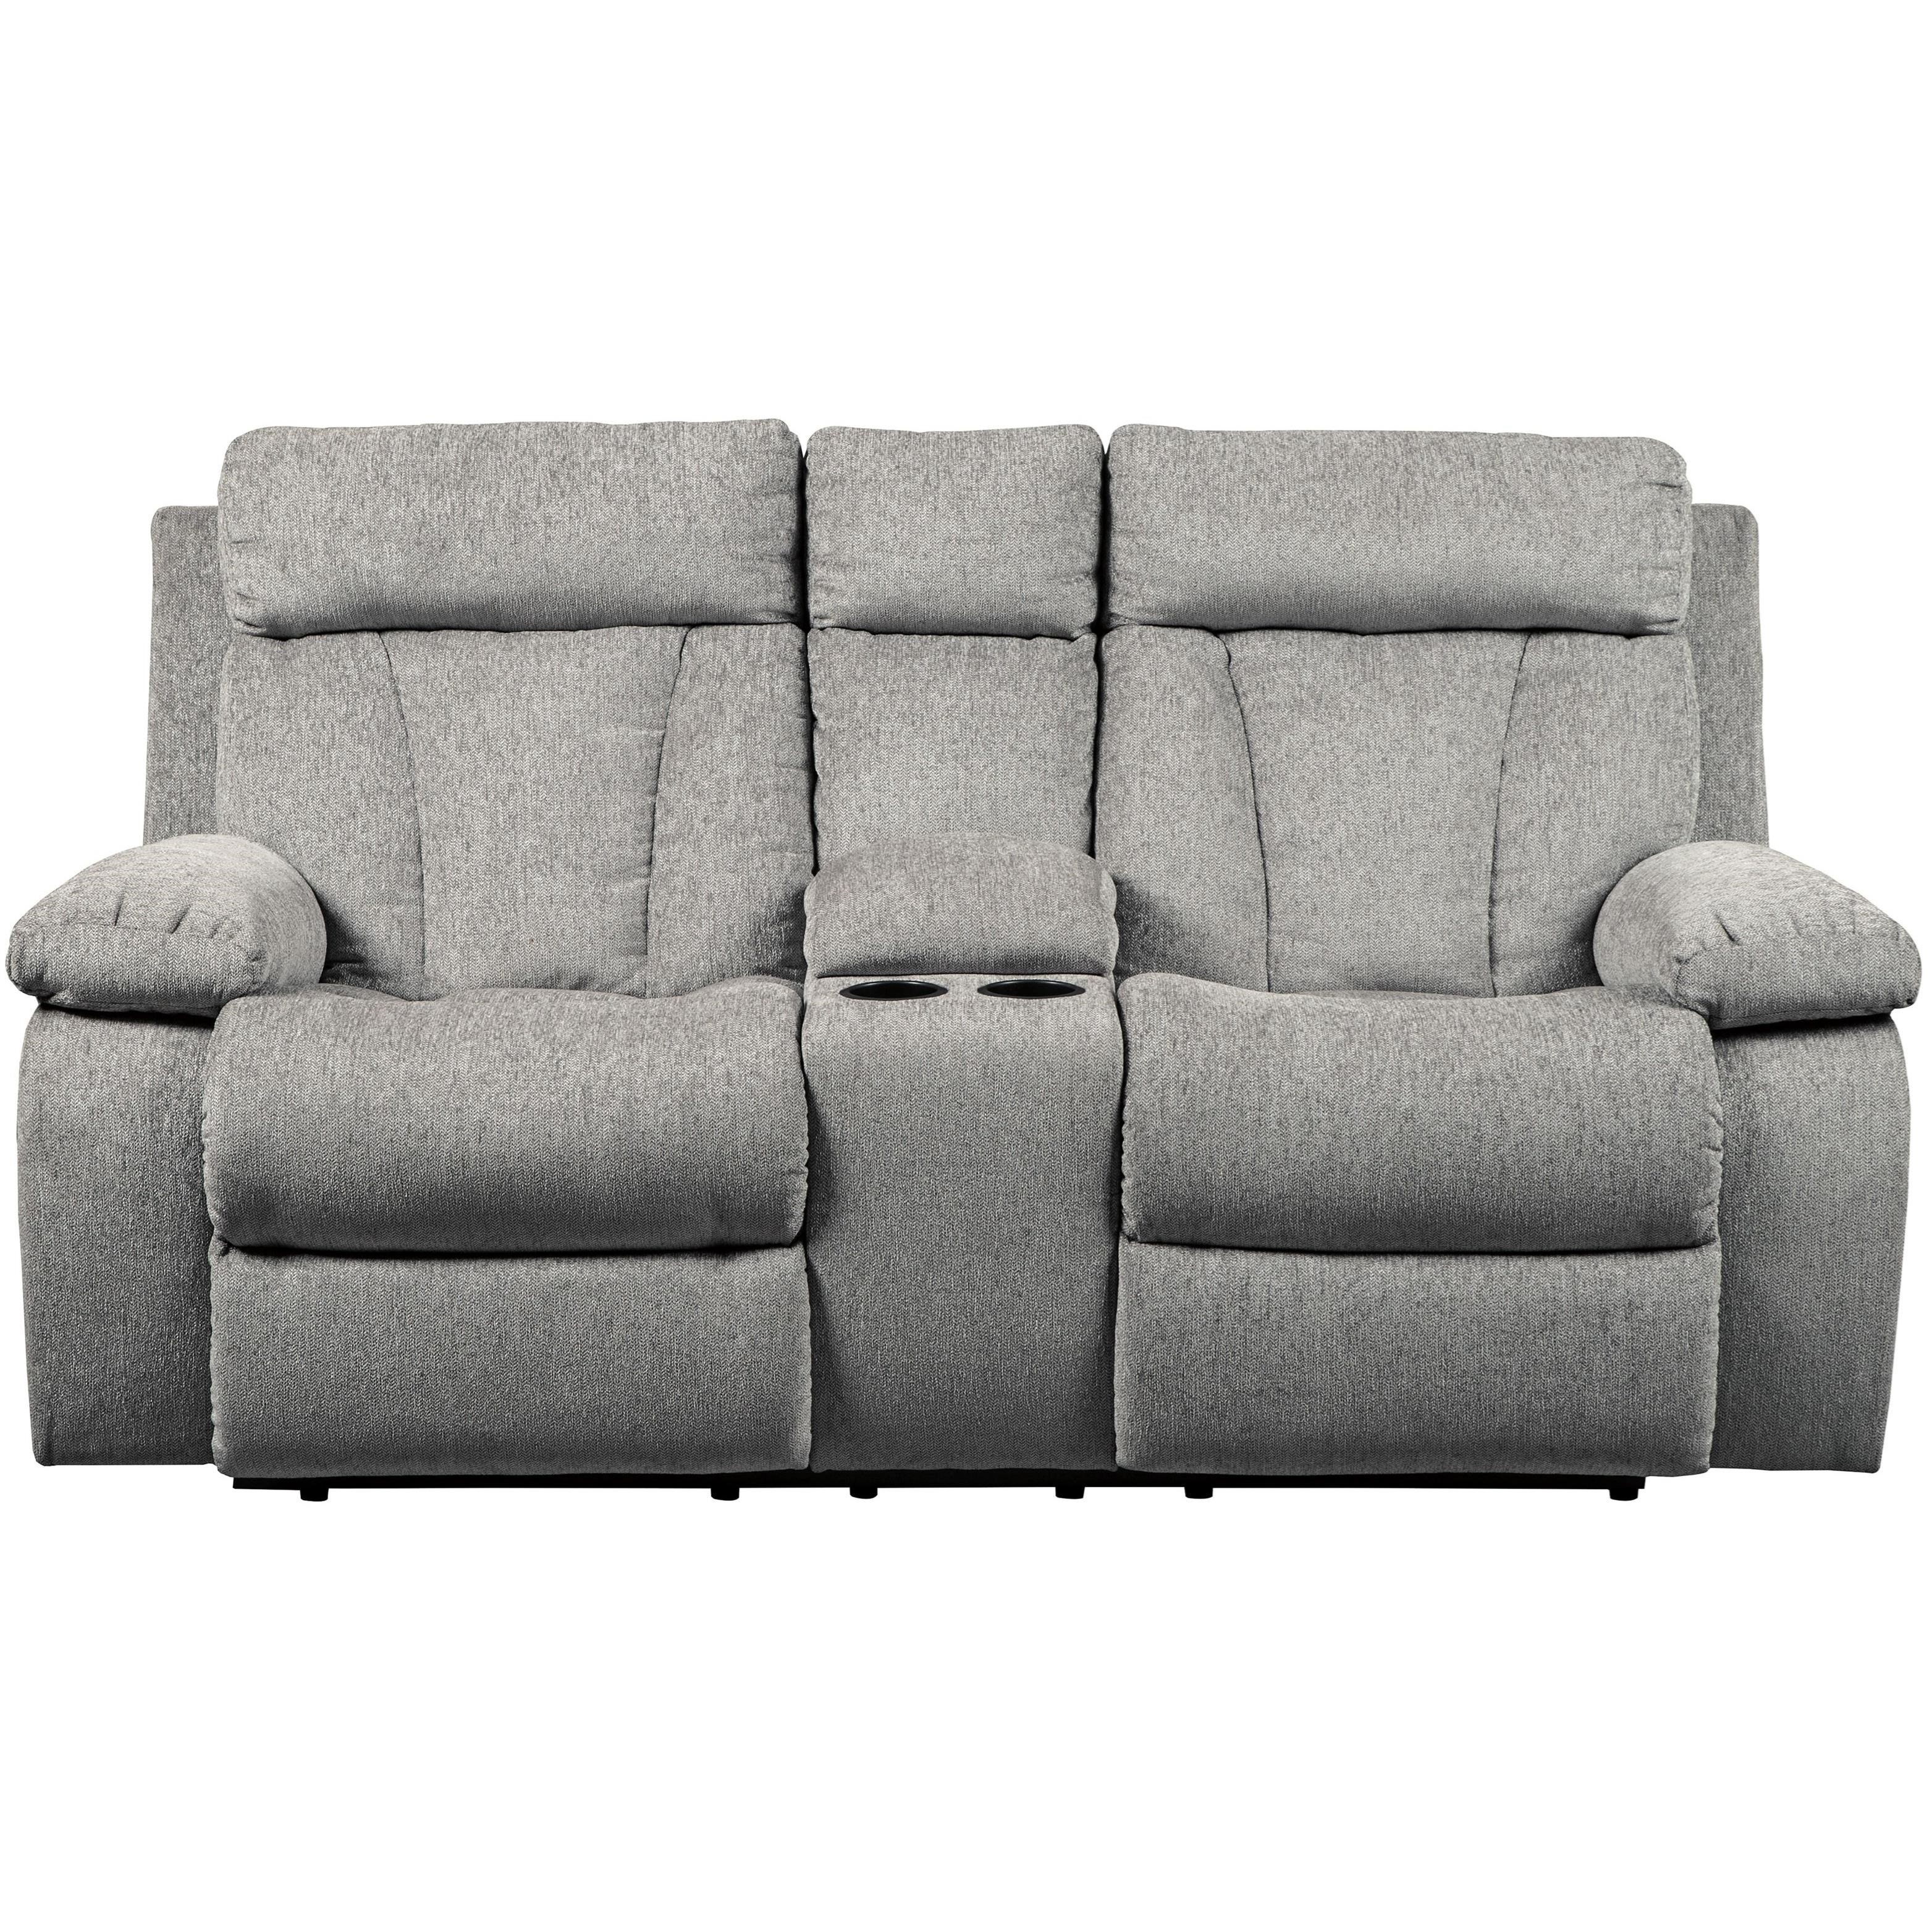 Mitchiner Reclining Loveseat by Signature Design by Ashley at HomeWorld Furniture